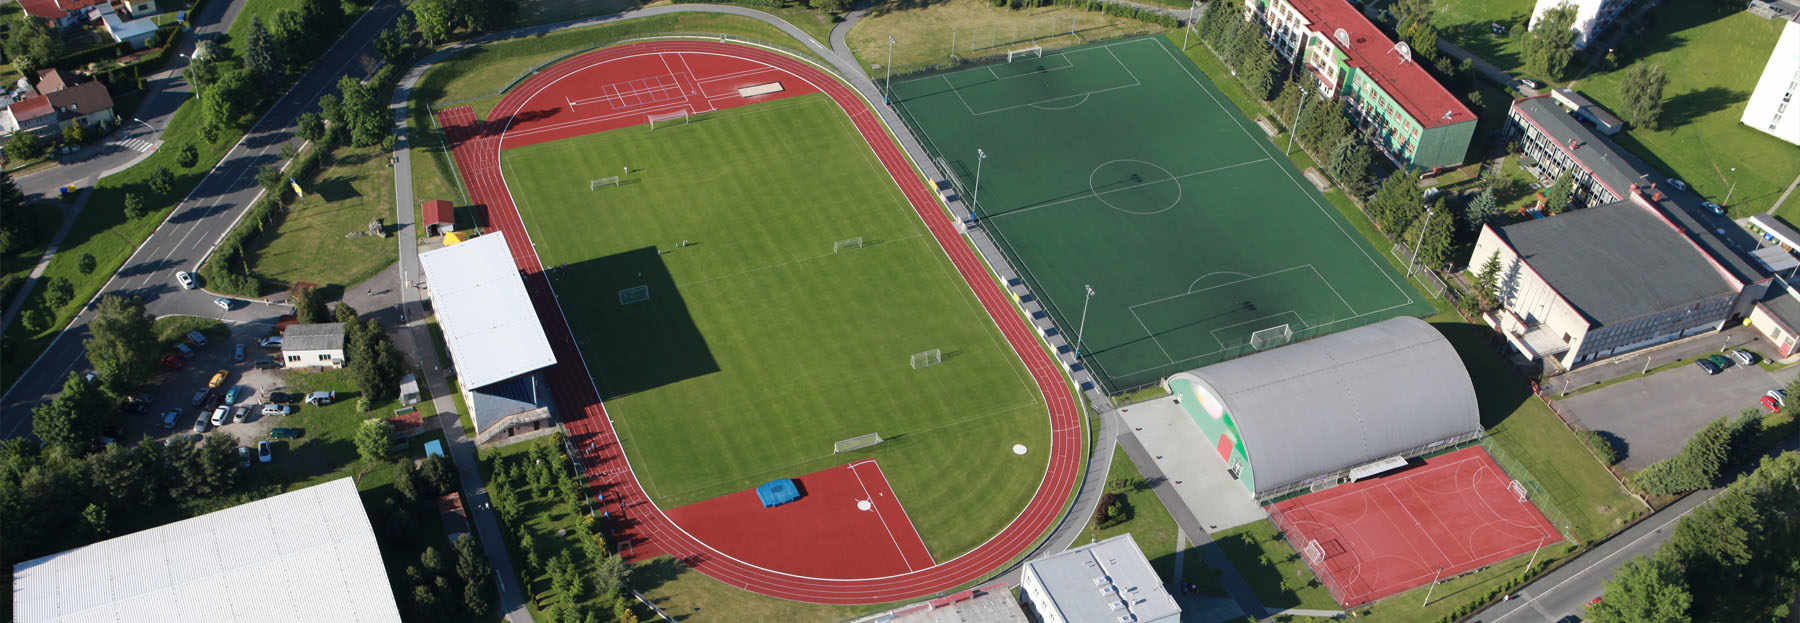 Sports facility management for clubs and leagues